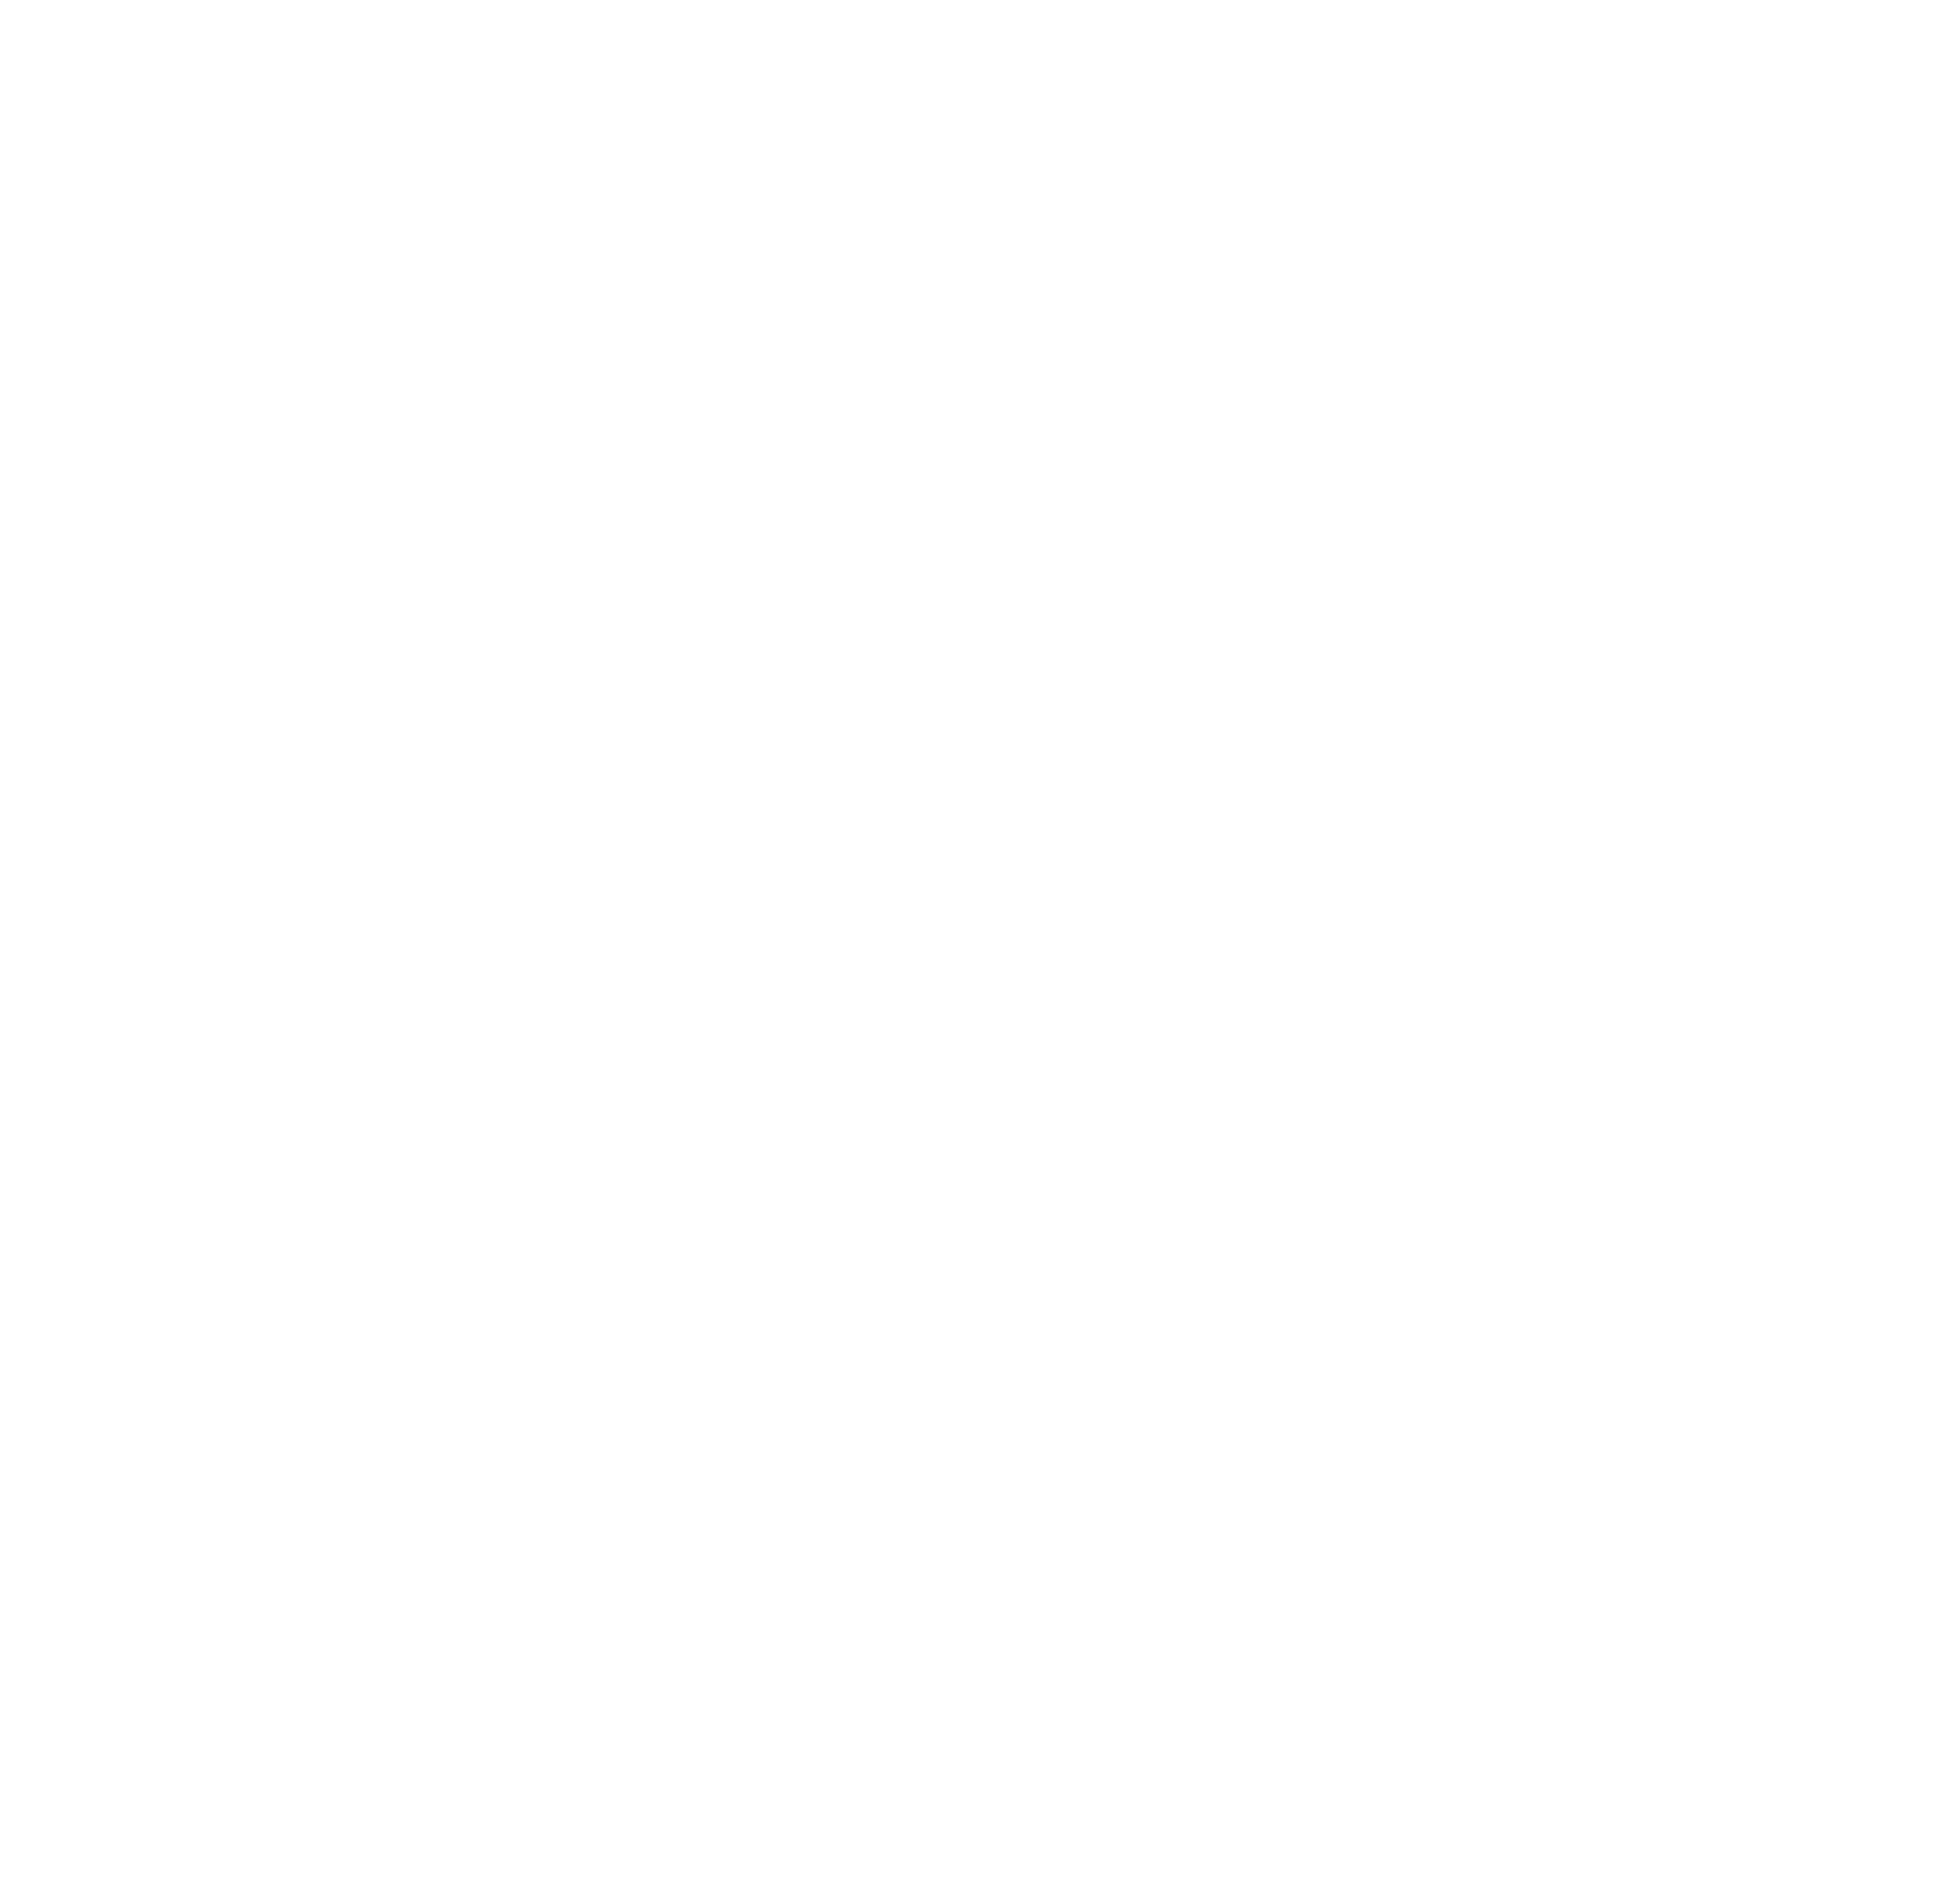 Keys clipart happy. Merry christmas and new